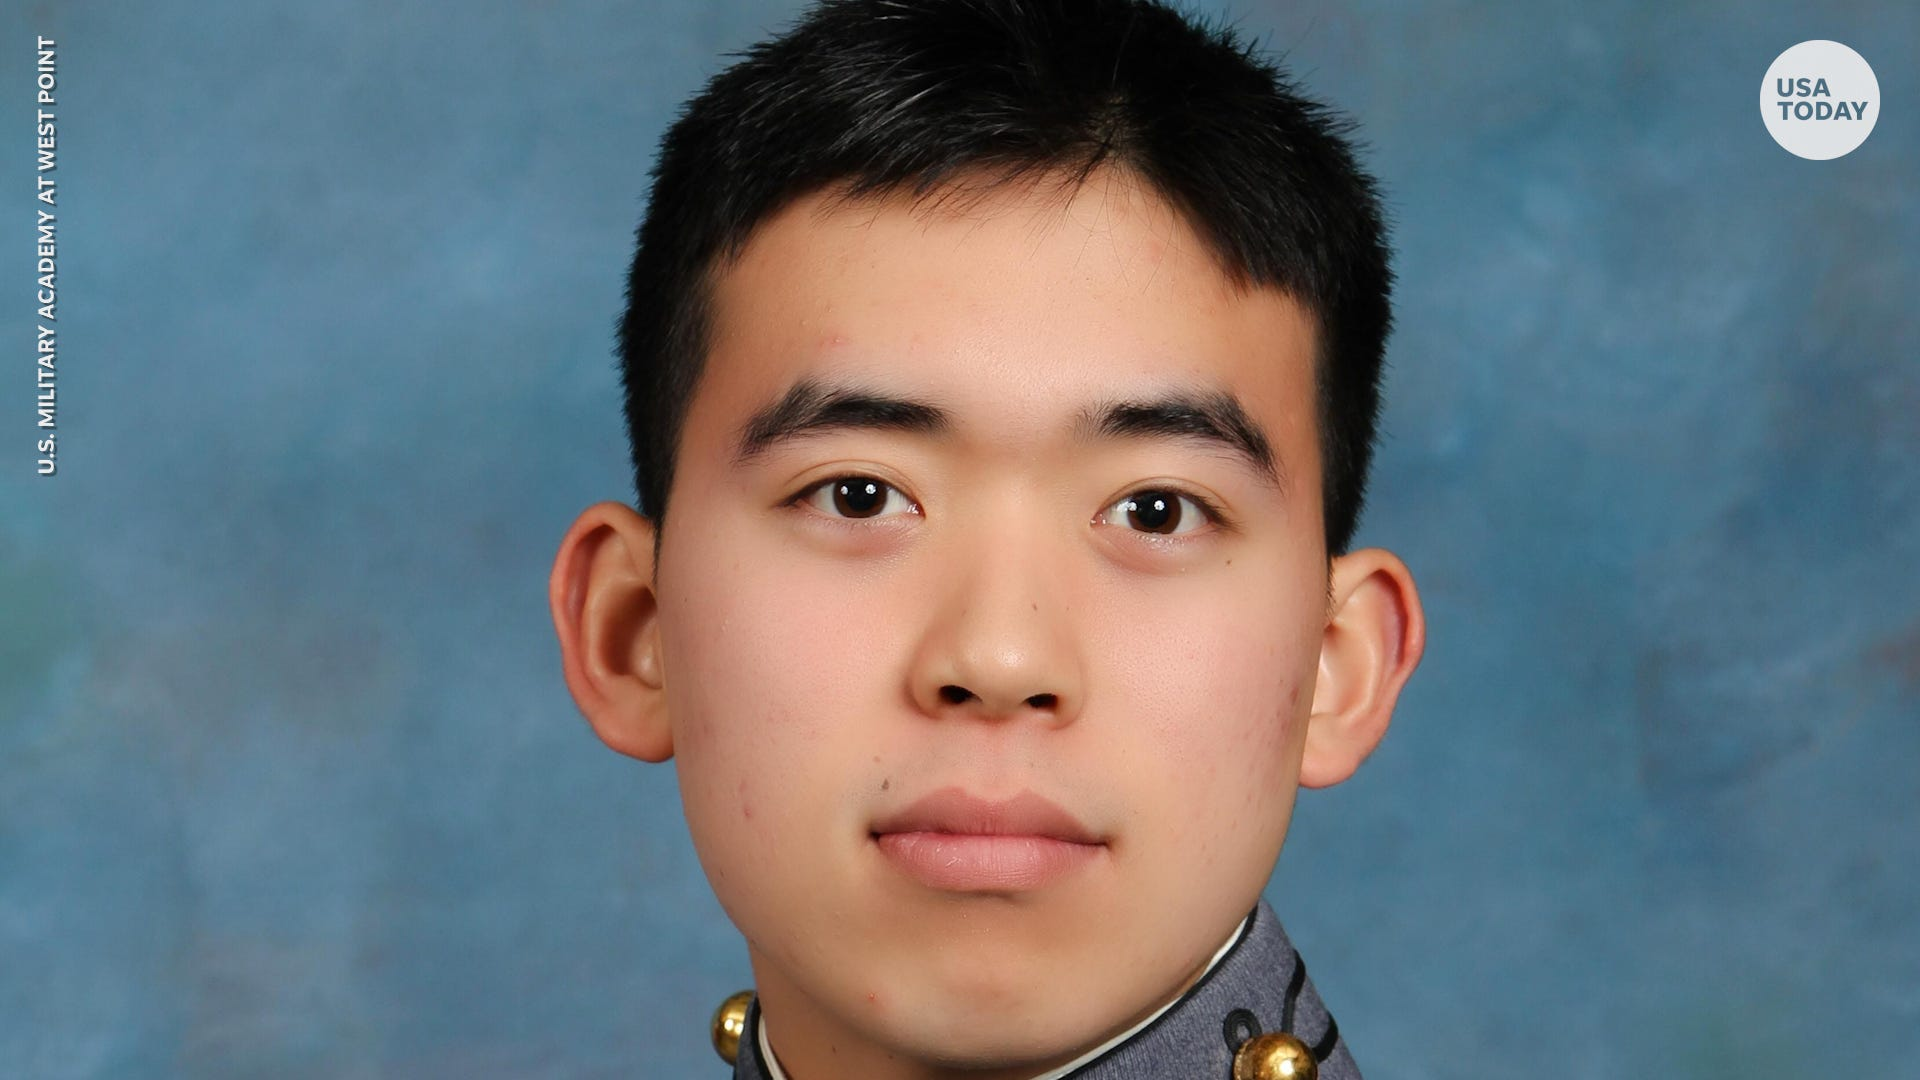 West Point cadet found dead days after going missing